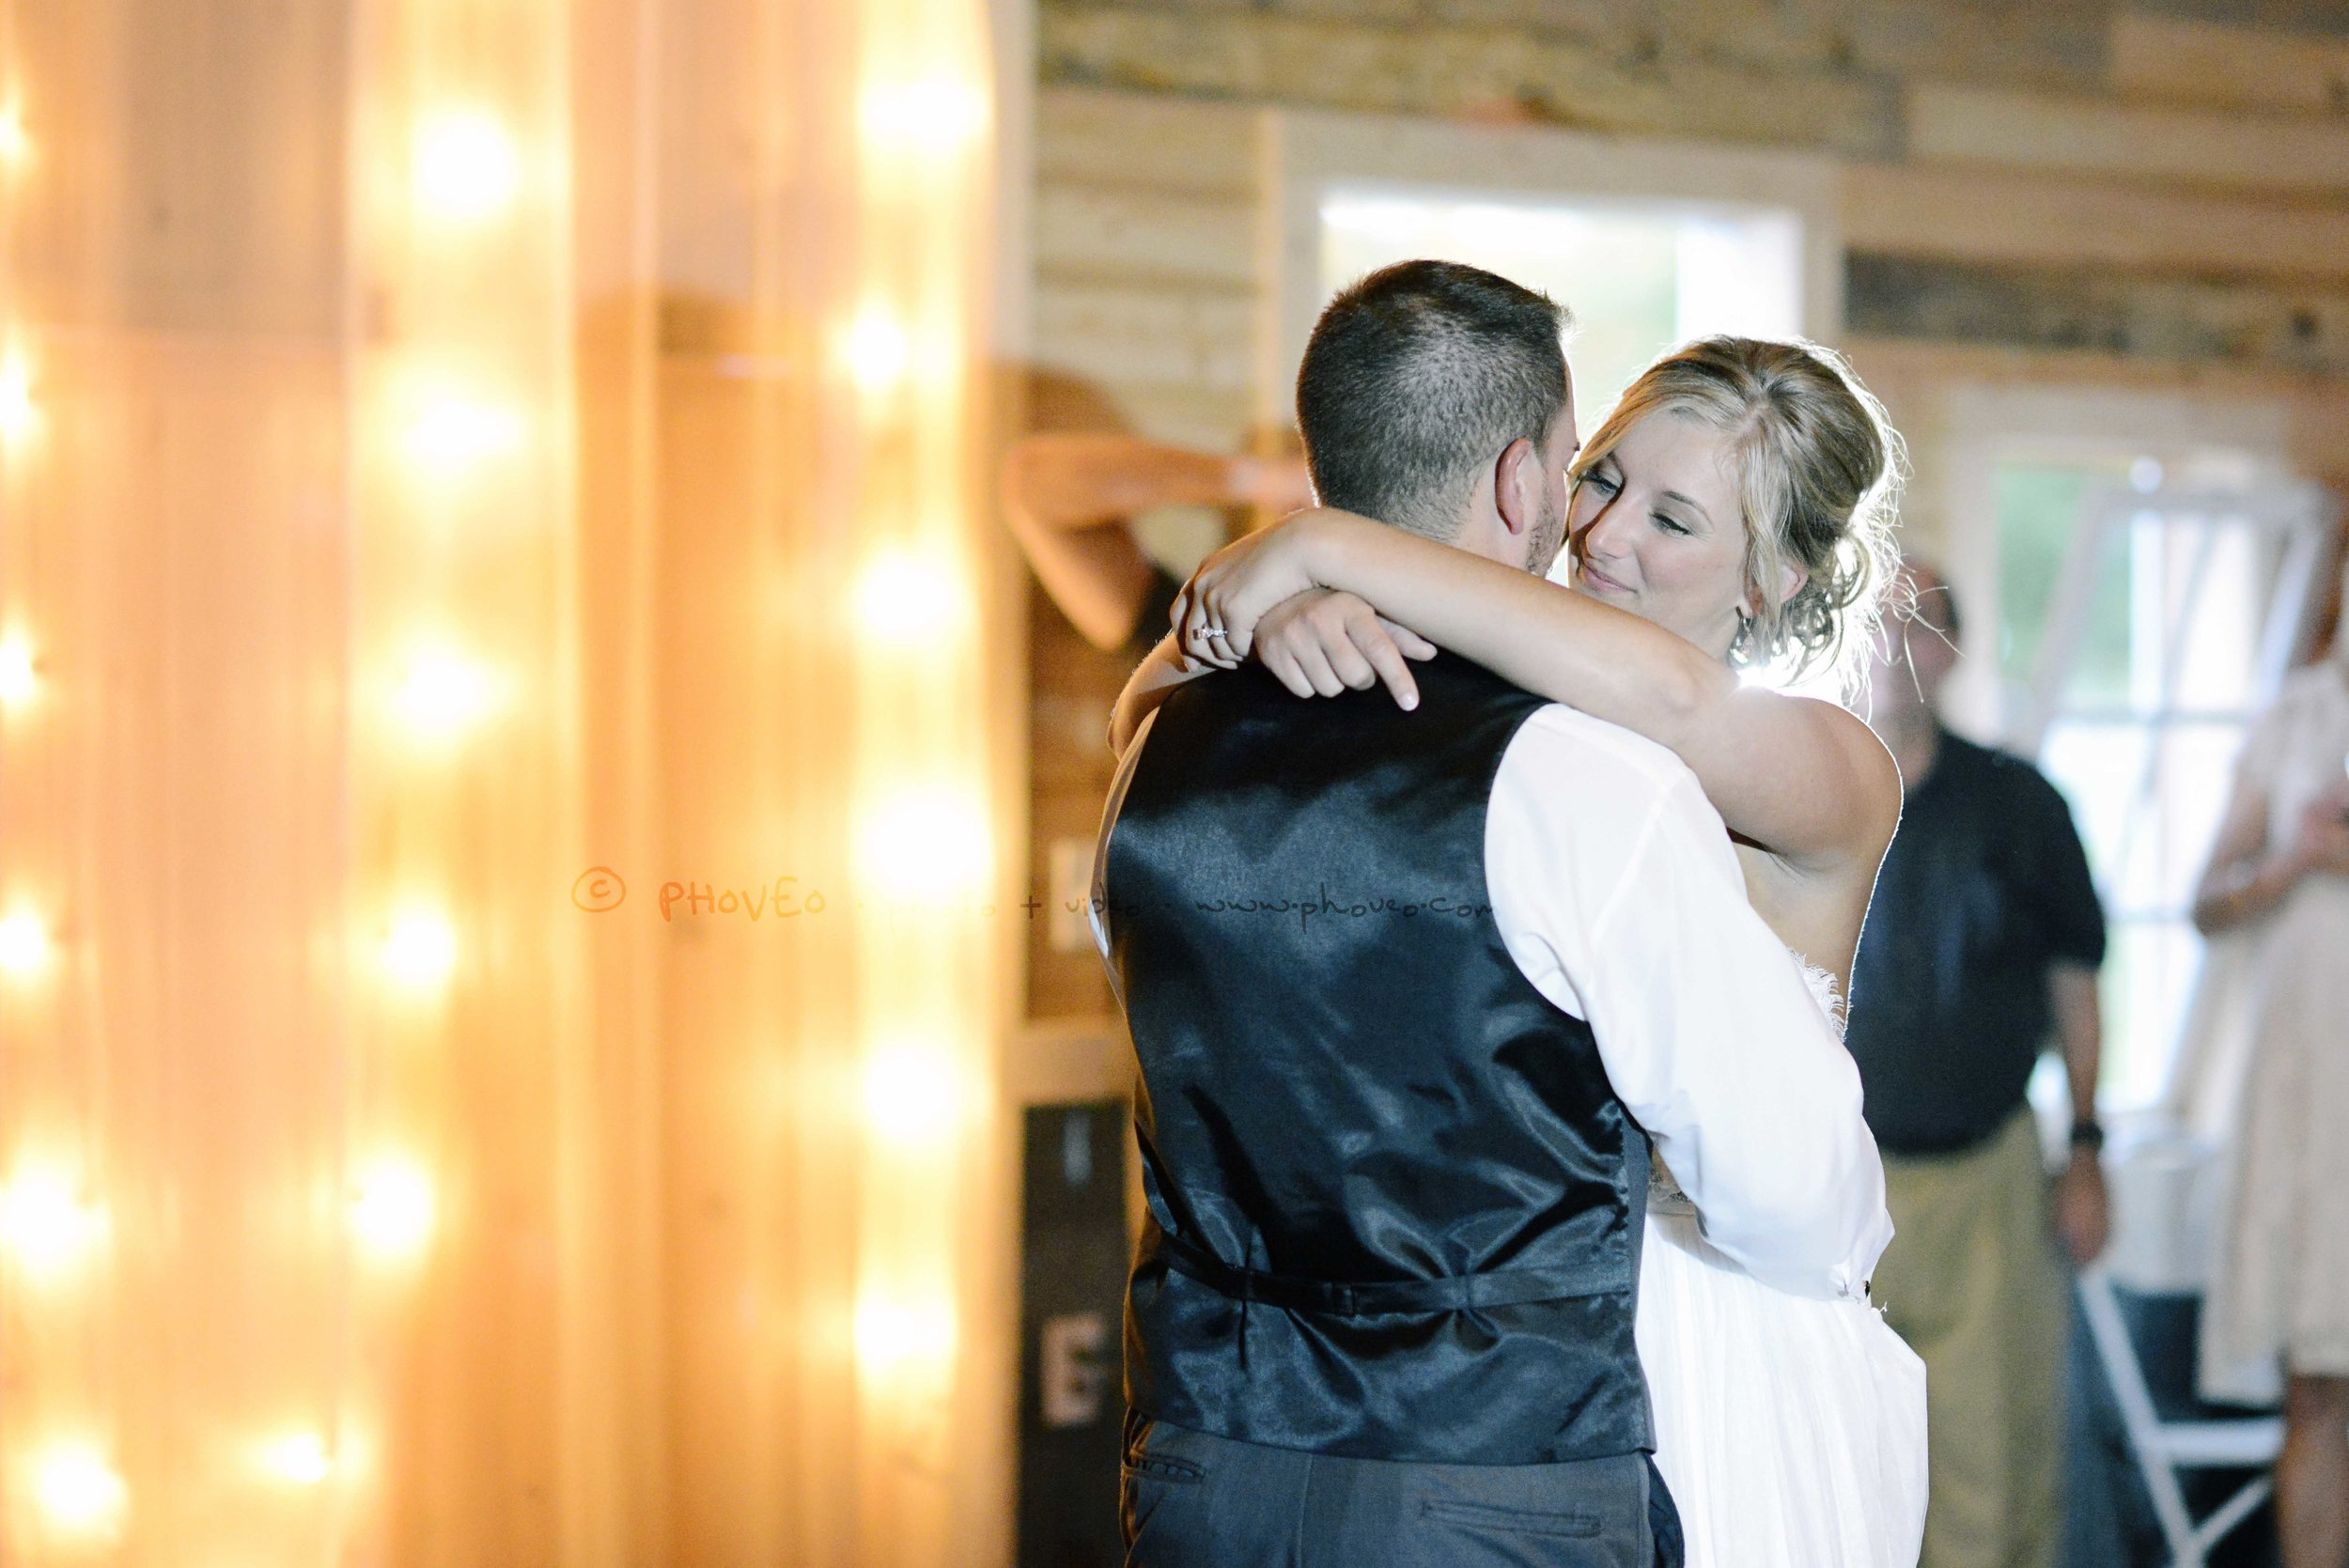 WM_20160826_Katelyn+Tony_97.jpg